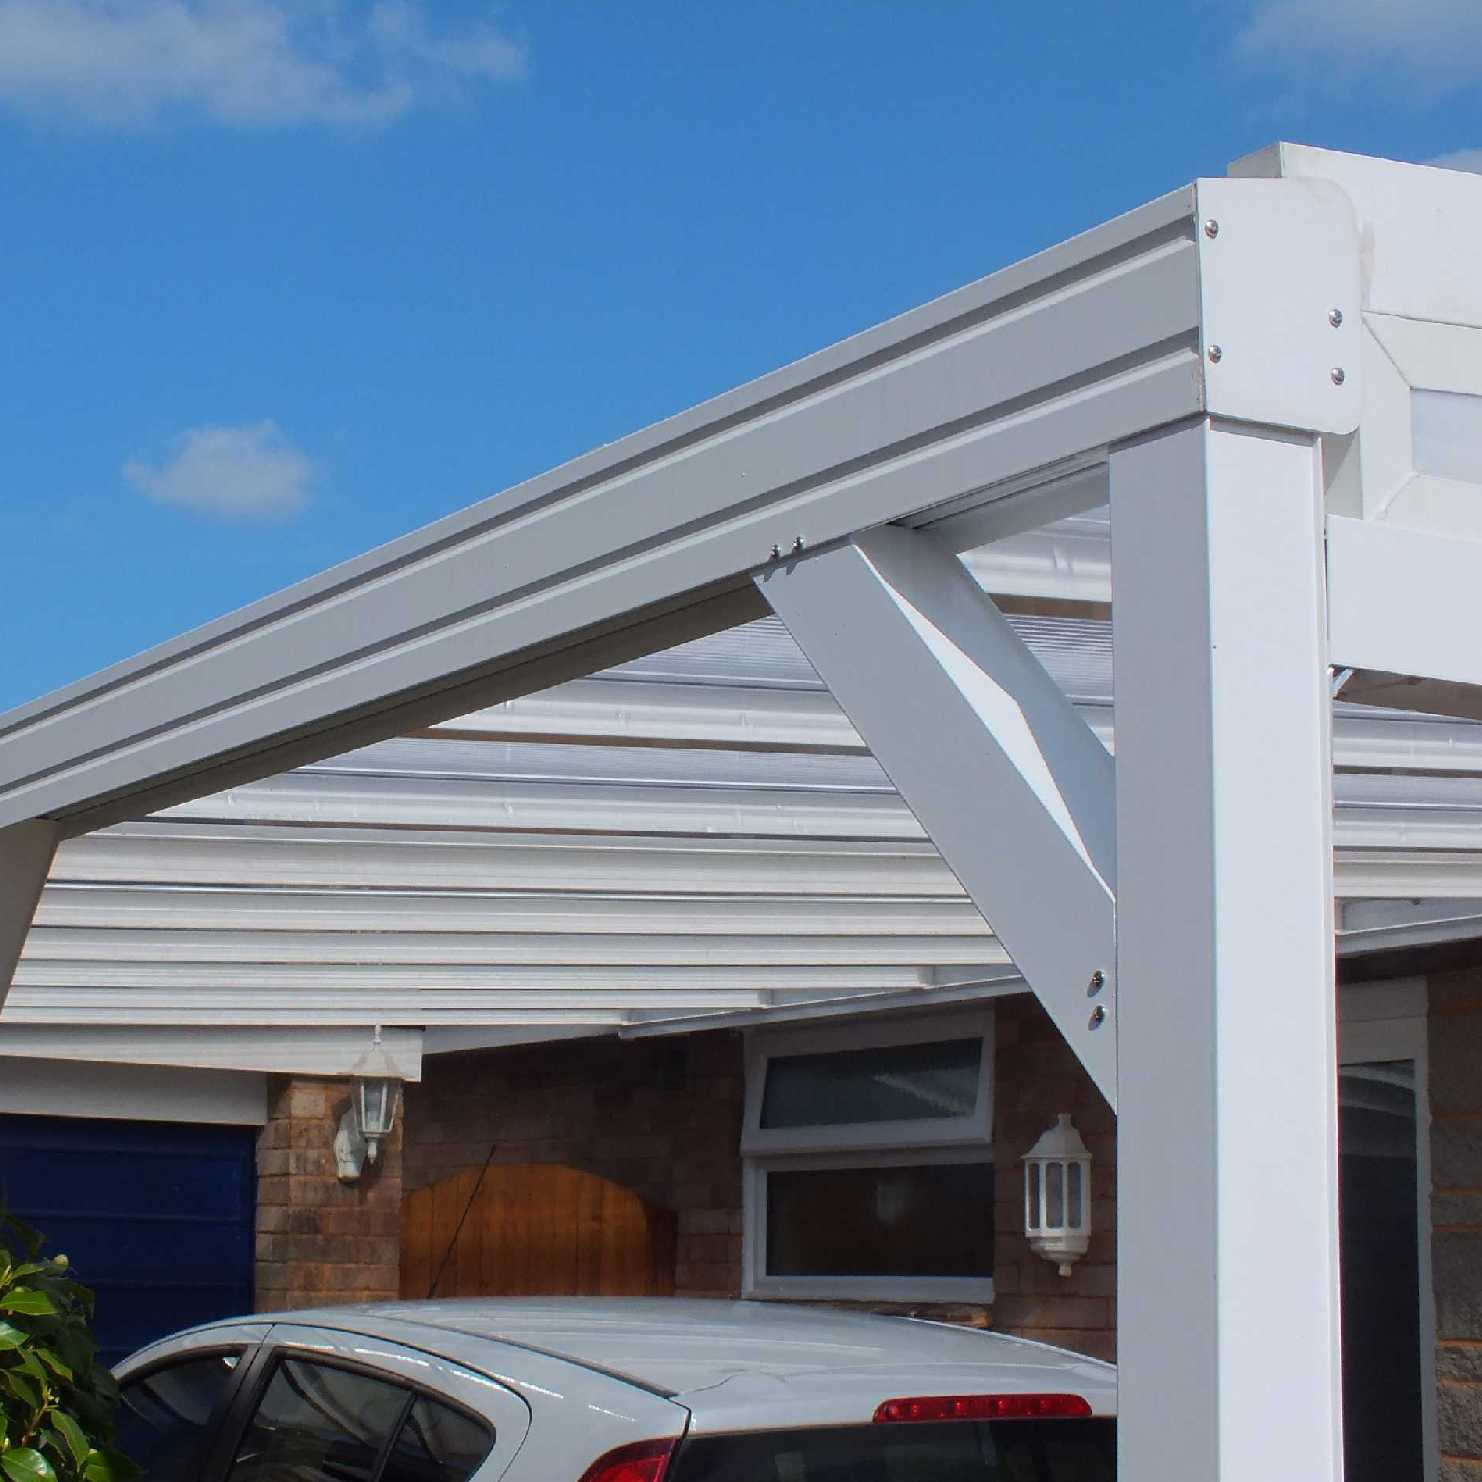 Buy Omega Smart White Lean-To Canopy with 16mm Polycarbonate Glazing - 10.6m (W) x 4.0m (P), (5) Supporting Posts online today